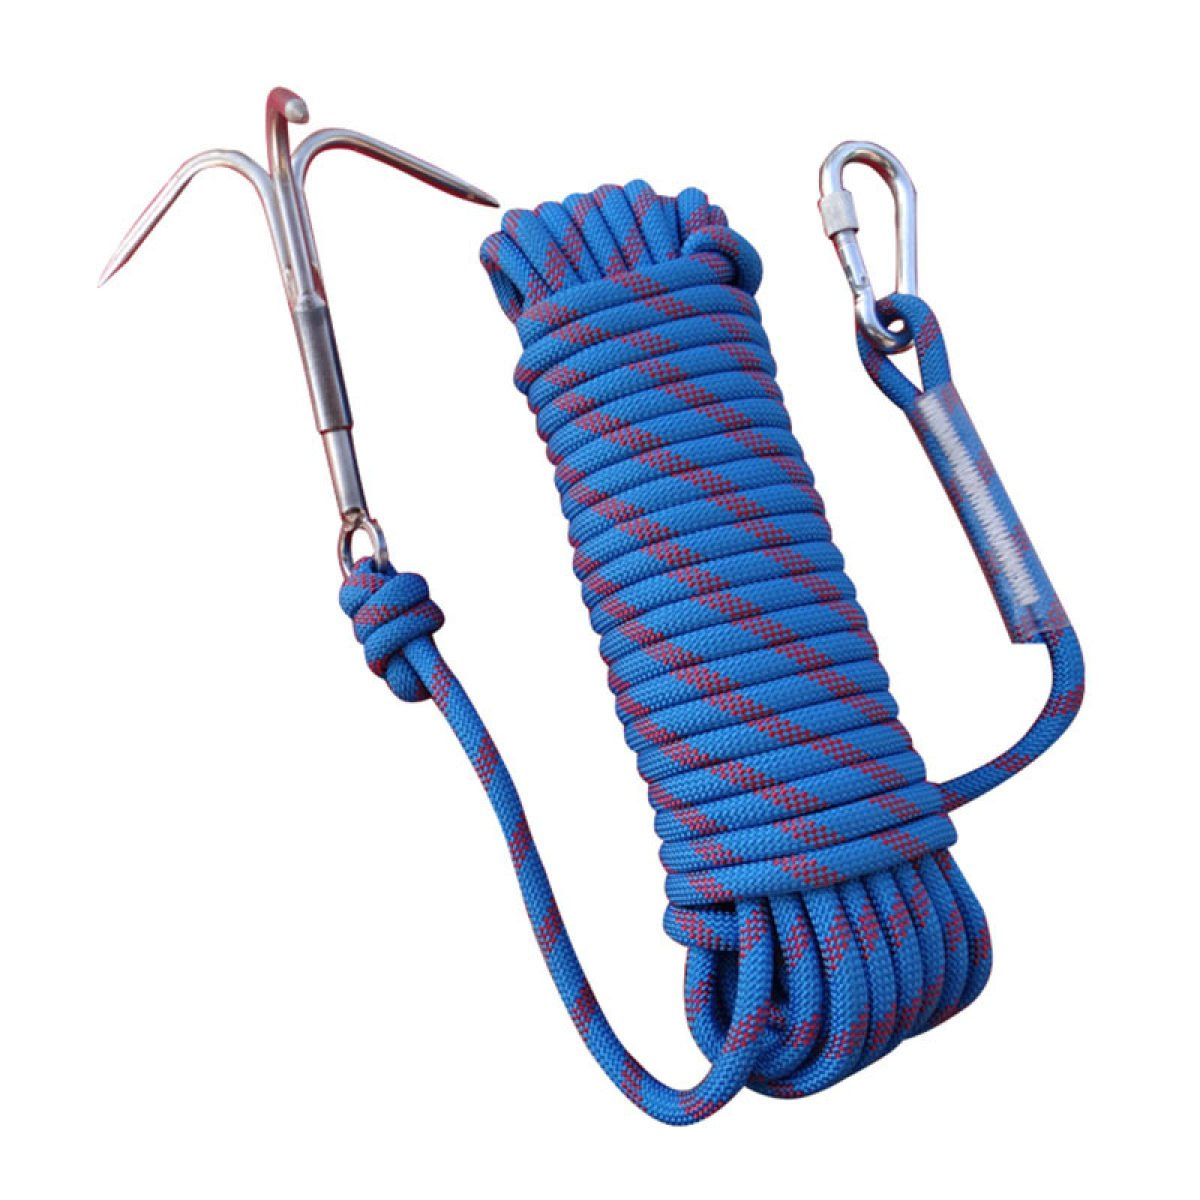 Wolike 10,20 Meters Length Professional Climbing Rope Rappelling Abseiling Rope